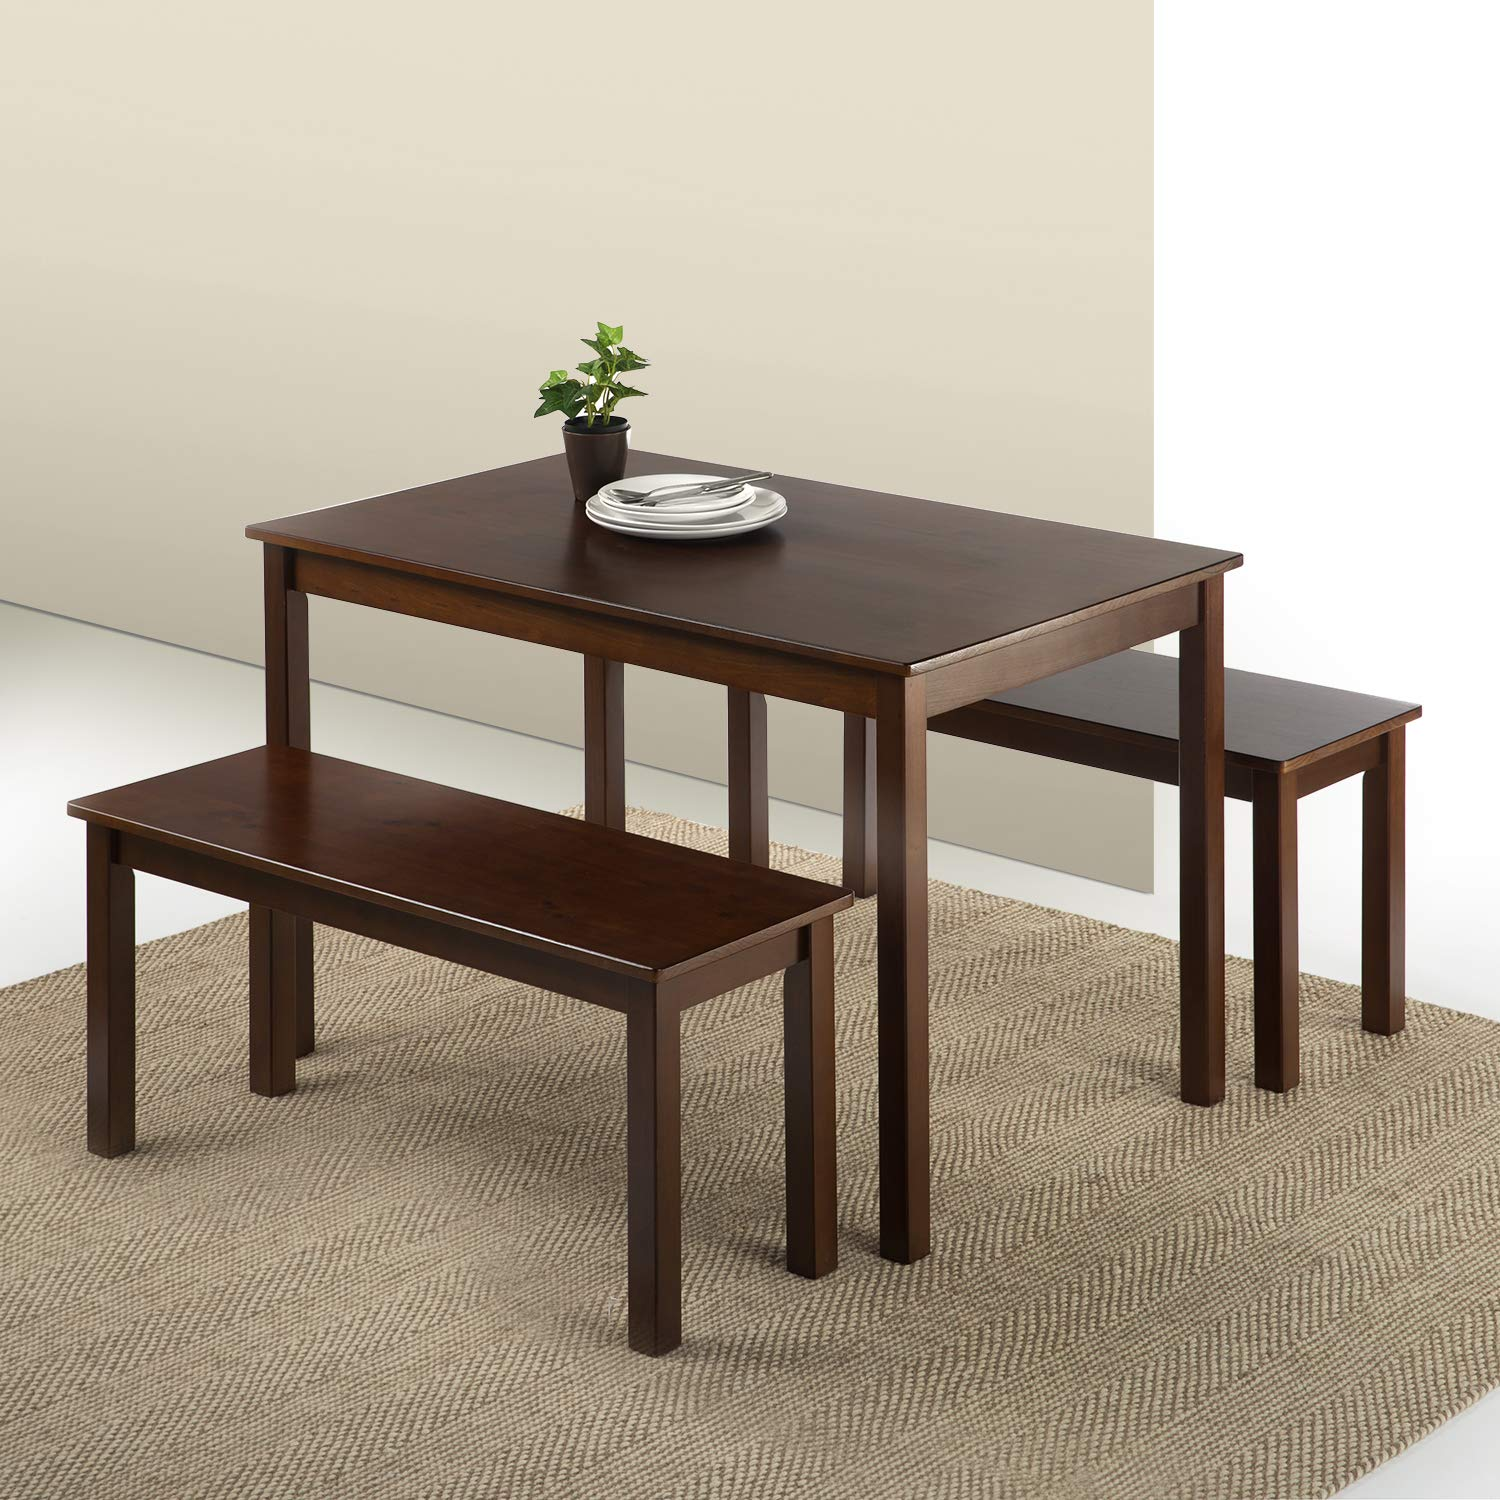 Espresso Wood Furniture